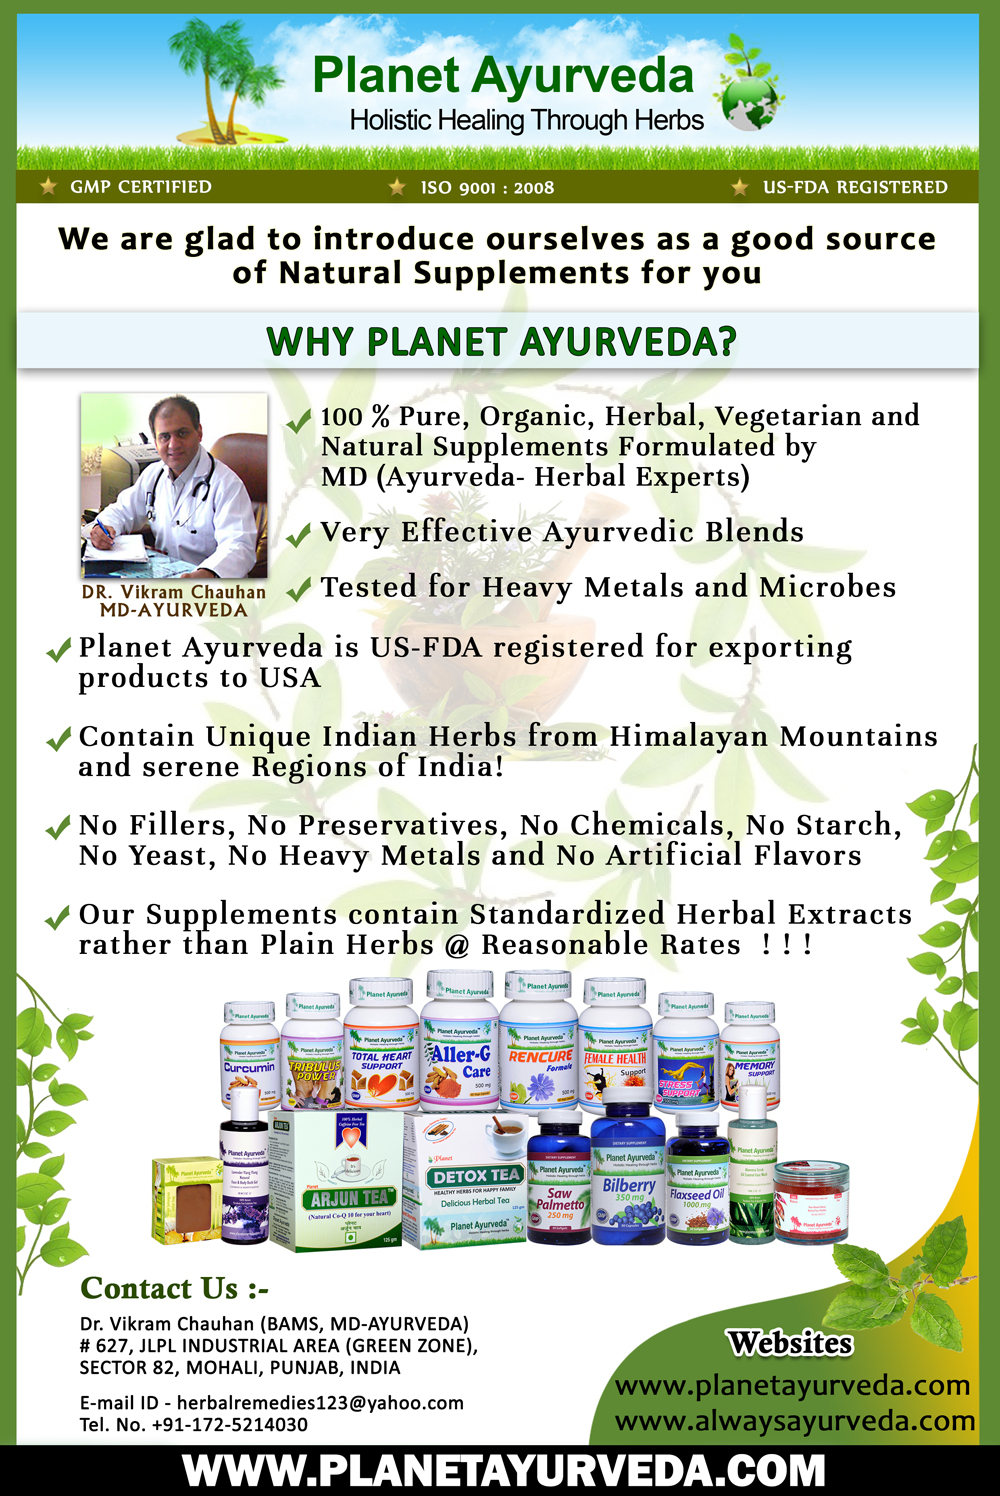 Why Planet Ayurveda Products?